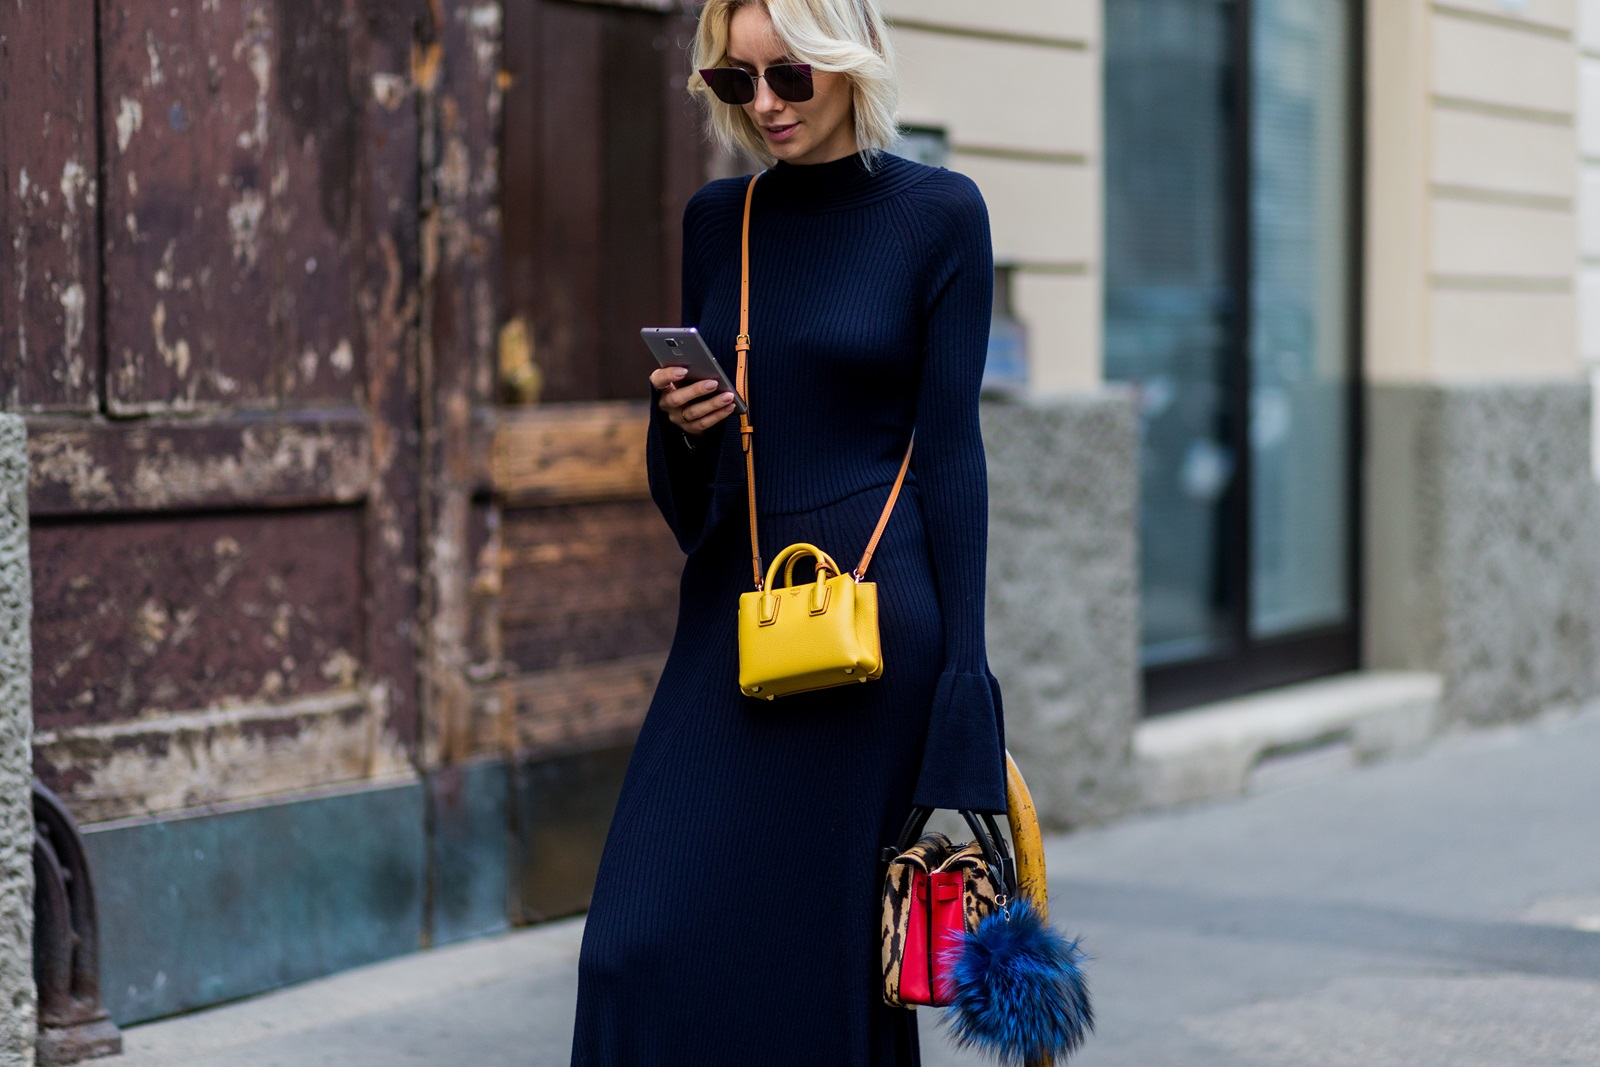 MILAN, ITALY - SEPTEMBER 21: Lisa Hahnbueck (@lisarvd) wearing a backless Knitdress with big sleeves H&M Trend, Milla Gepard Tote Mini + Milla Micro Bag / X-Mini, Fendi sunglasses is seen outside Alberta Ferretti during Milan Fashion Week Spring/Summer 2017 on September 21, 2016 in Milan, Italy. (Photo by Christian Vierig/Getty Images) *** Local Caption *** Lisa Hahnbueck